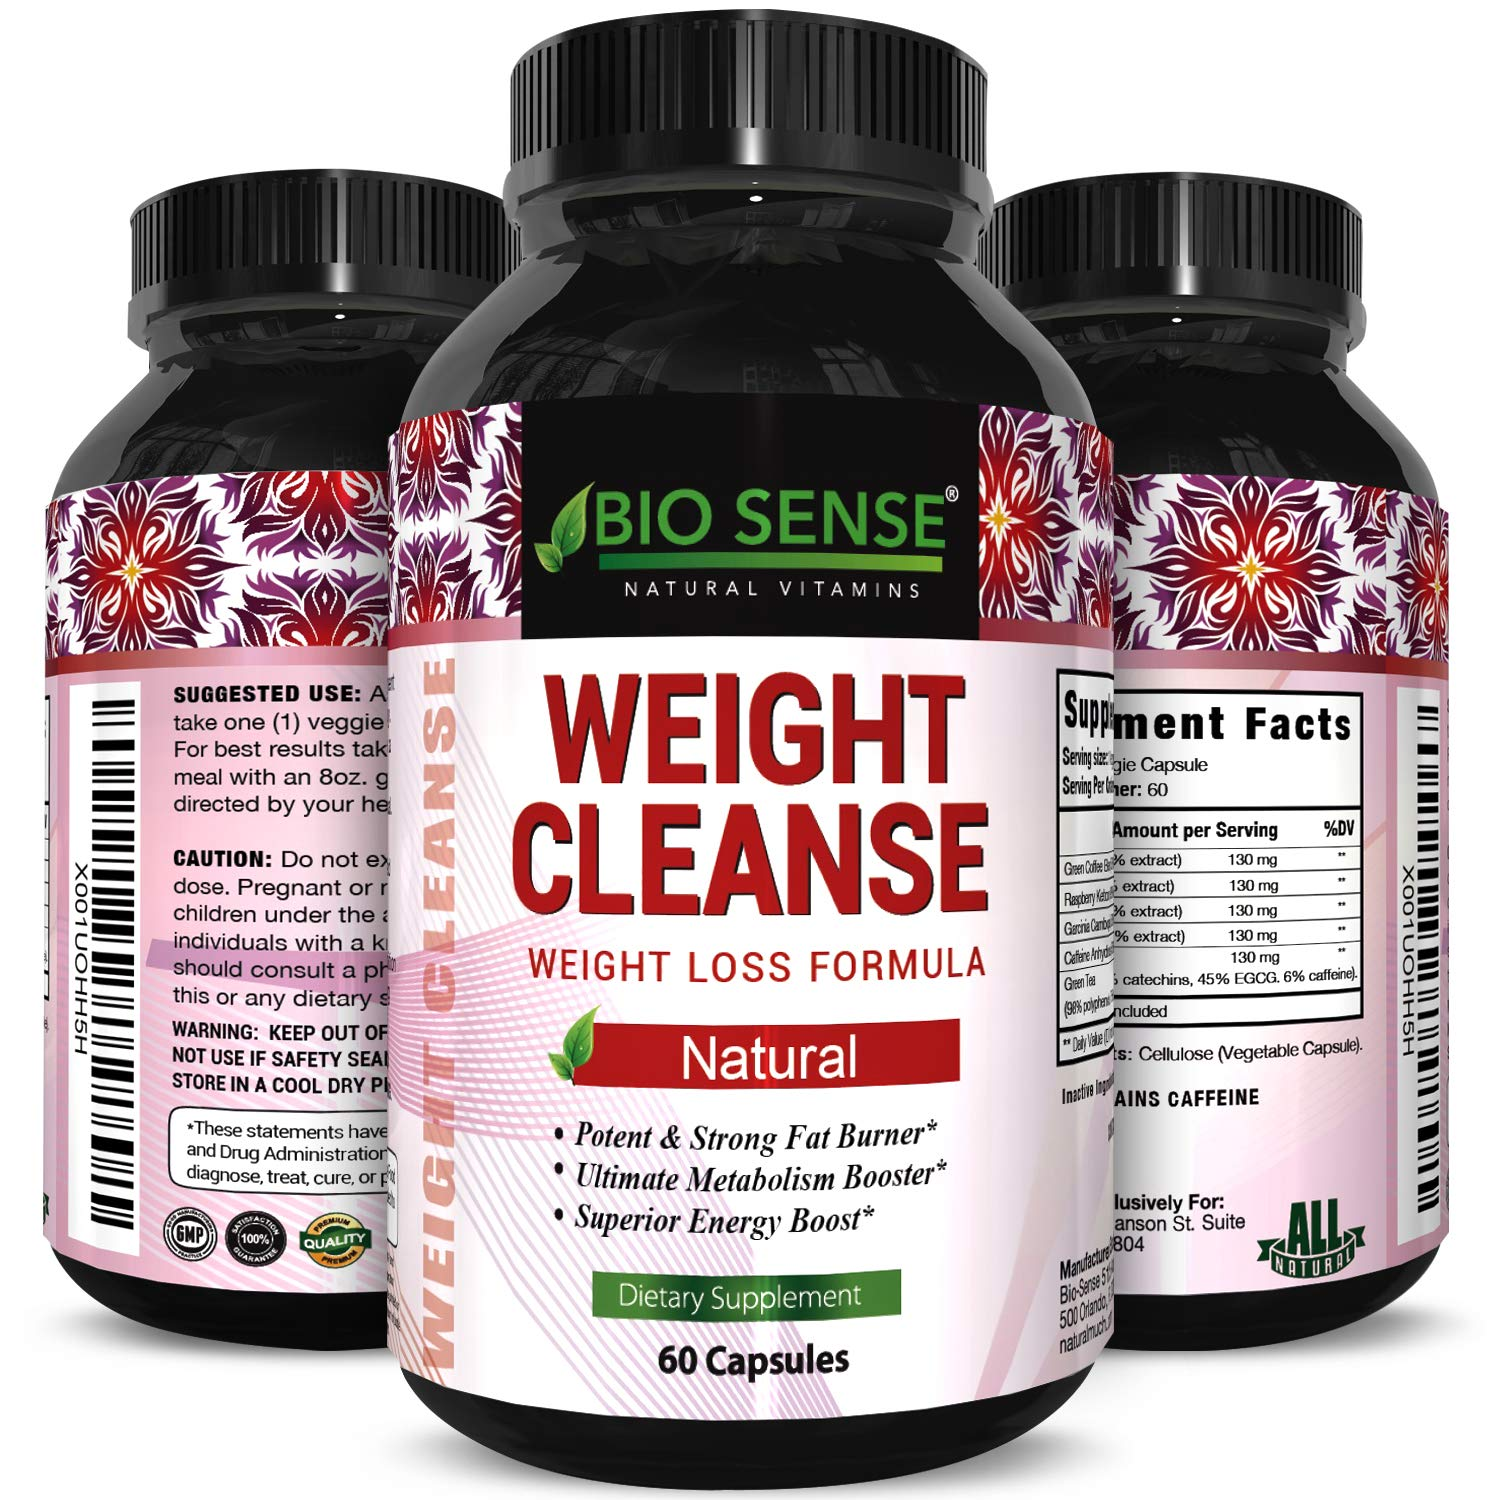 New Pure Garcinia Cambogia Green Coffee Bean and Raspberry Ketones Complex with Green Tea and Keto Fat Burner Diet Pills Weight Loss Formula Highest Grade Pure Blend 60 Capsules by Bio Sense